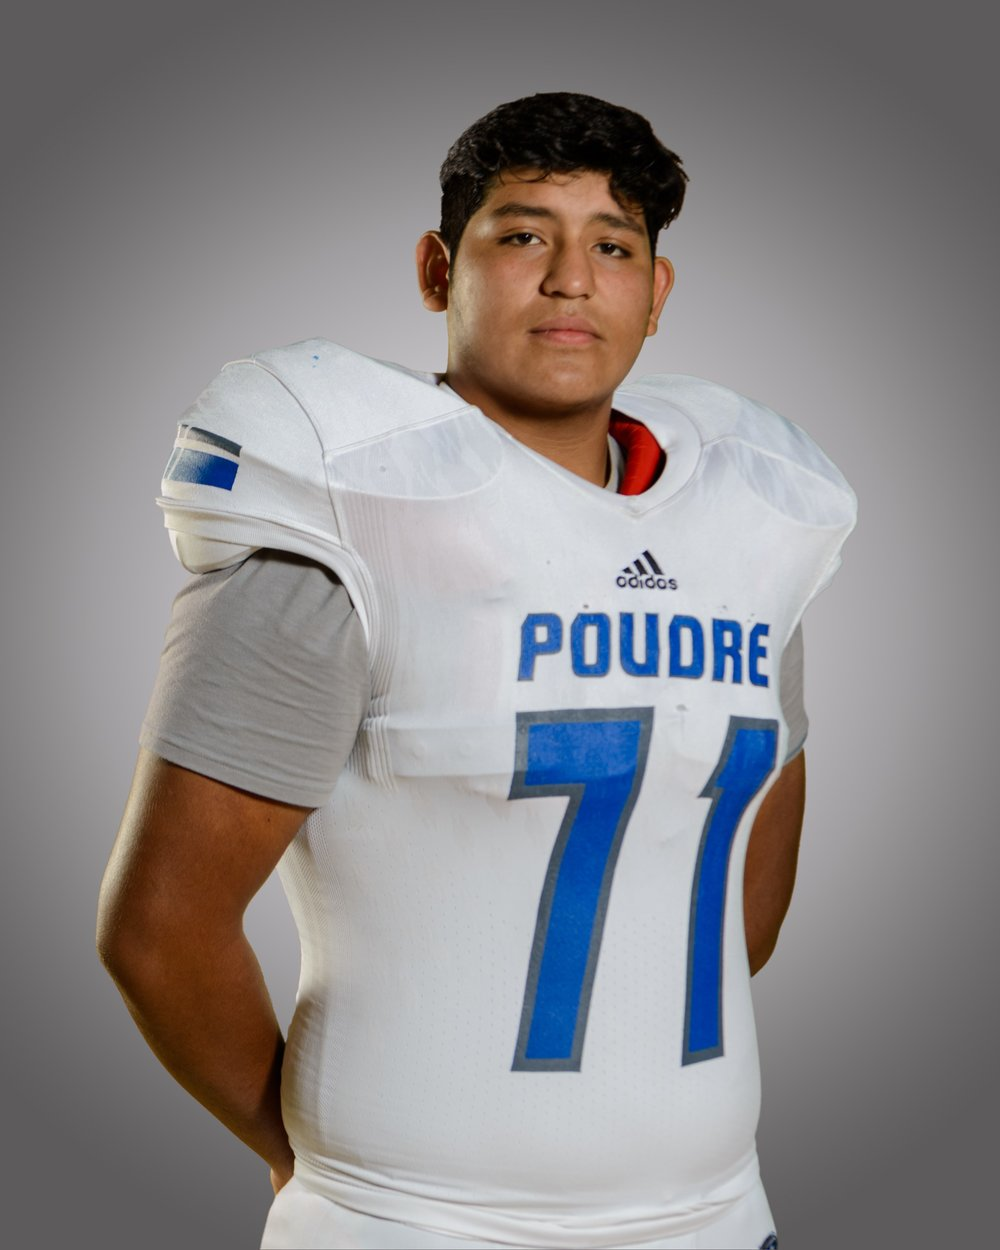 "Brian Crespo - #71 / LT Class of 2020 / 6'6"" 300 lbs    Email:  chagito1234@hotmail.com   Hudl:   http://www.hudl.com/v/2Avh7P    Twitter Handle:  @briancrespo16   Honors : Honorable Mention All-State 2018 - CHSAA / 1st Team All Conference at LT - Front Range League"